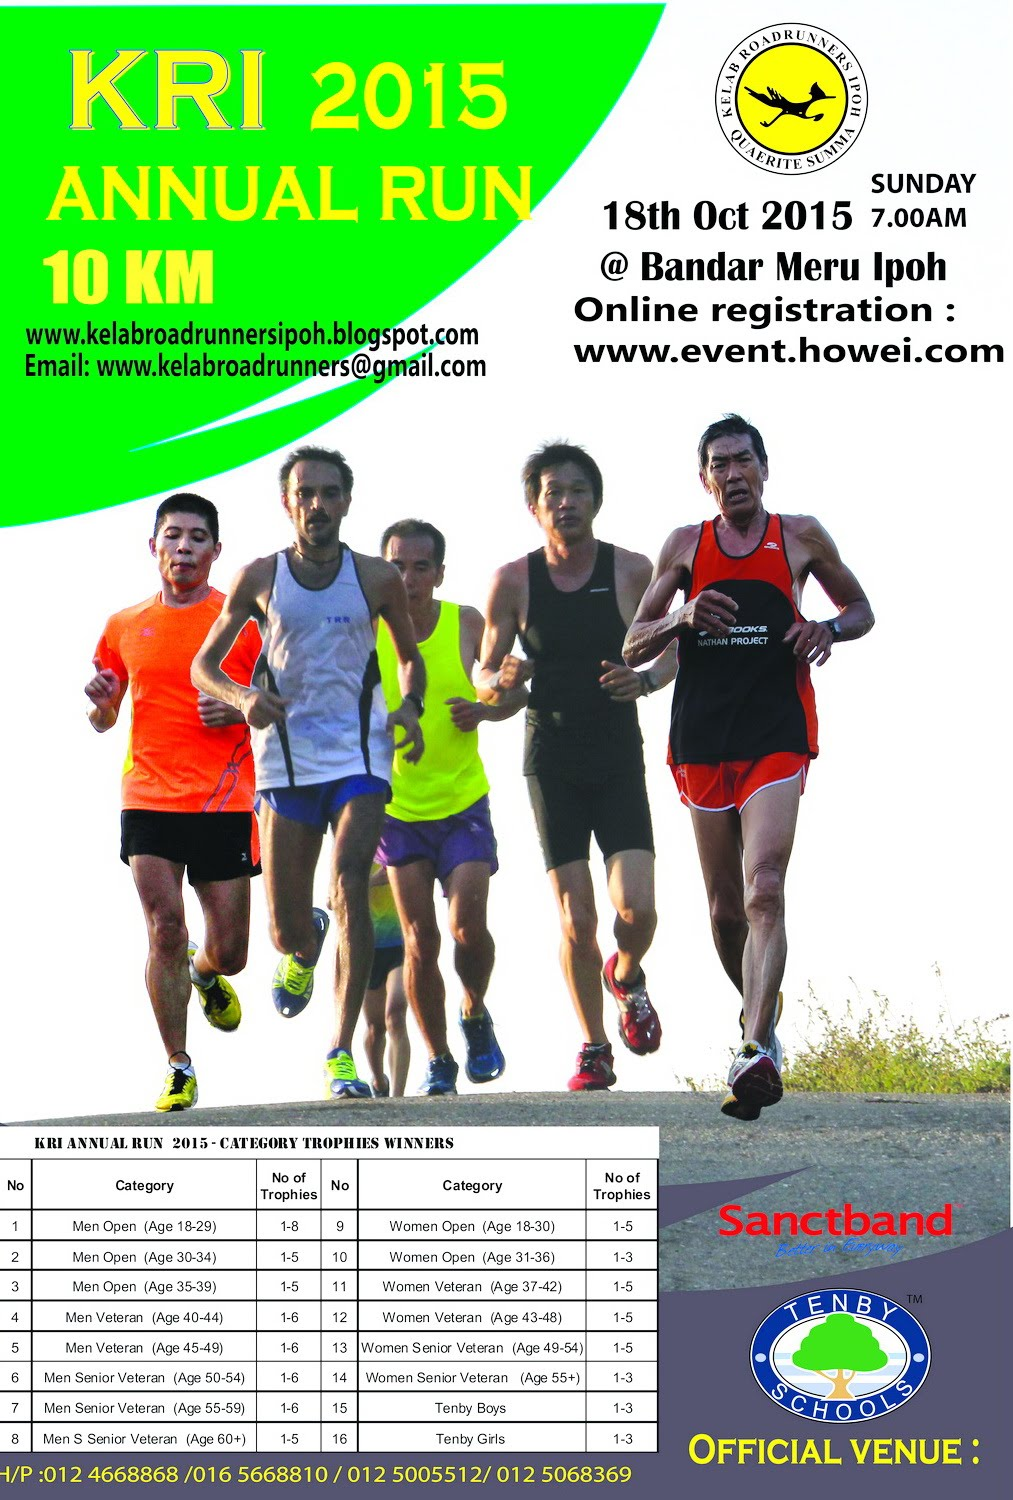 ONLINE REGISTRATION : KRI ANNUAL RUN